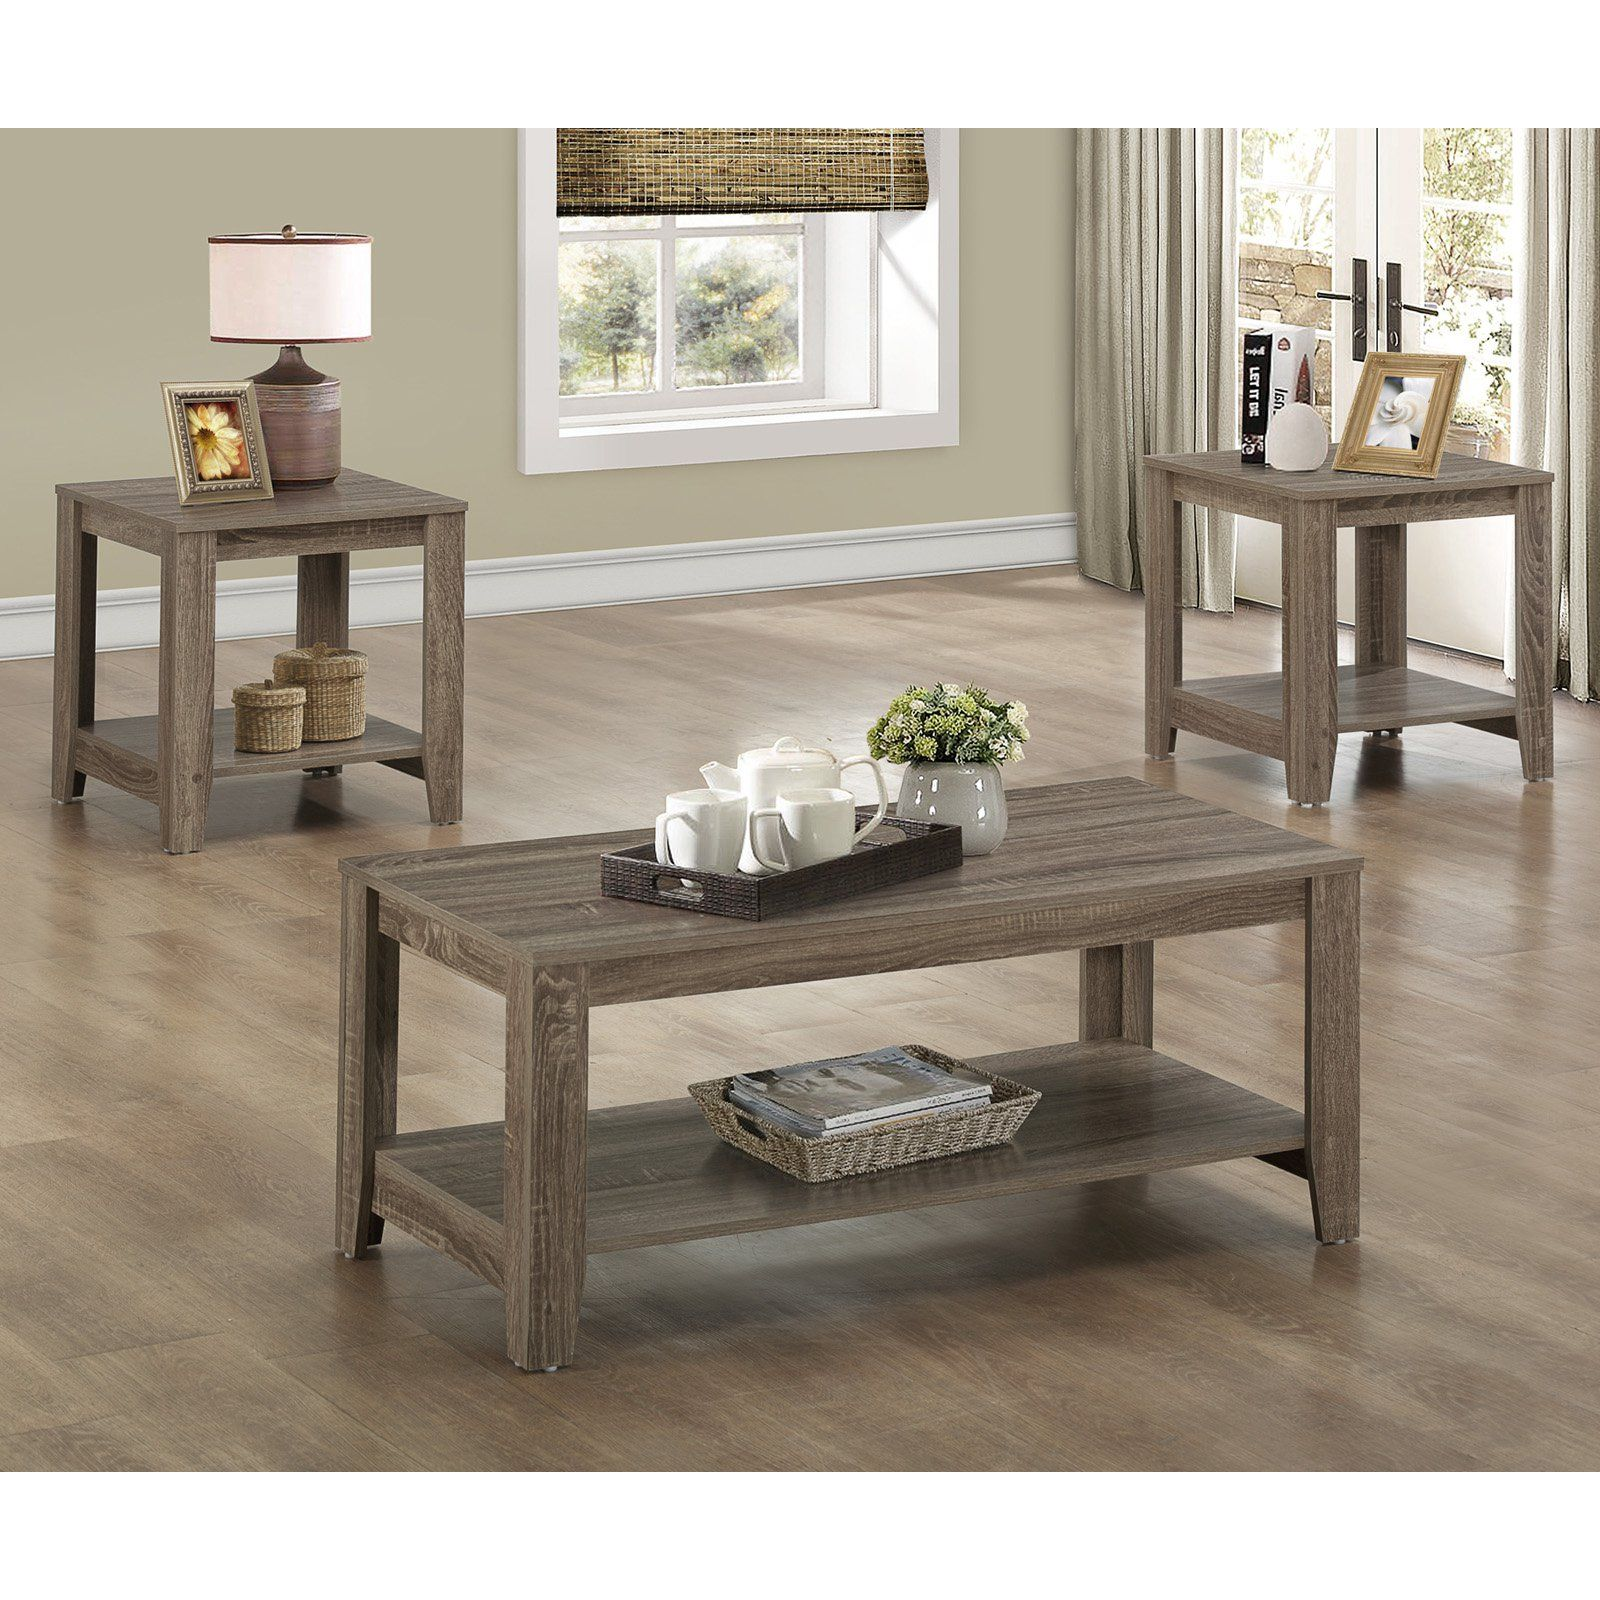 Monarch Specialties 3 Piece Occasional Set Dark Taupe 3 Piece Coffee Table Set Coffee Table Living Room Table Sets [ 1600 x 1600 Pixel ]